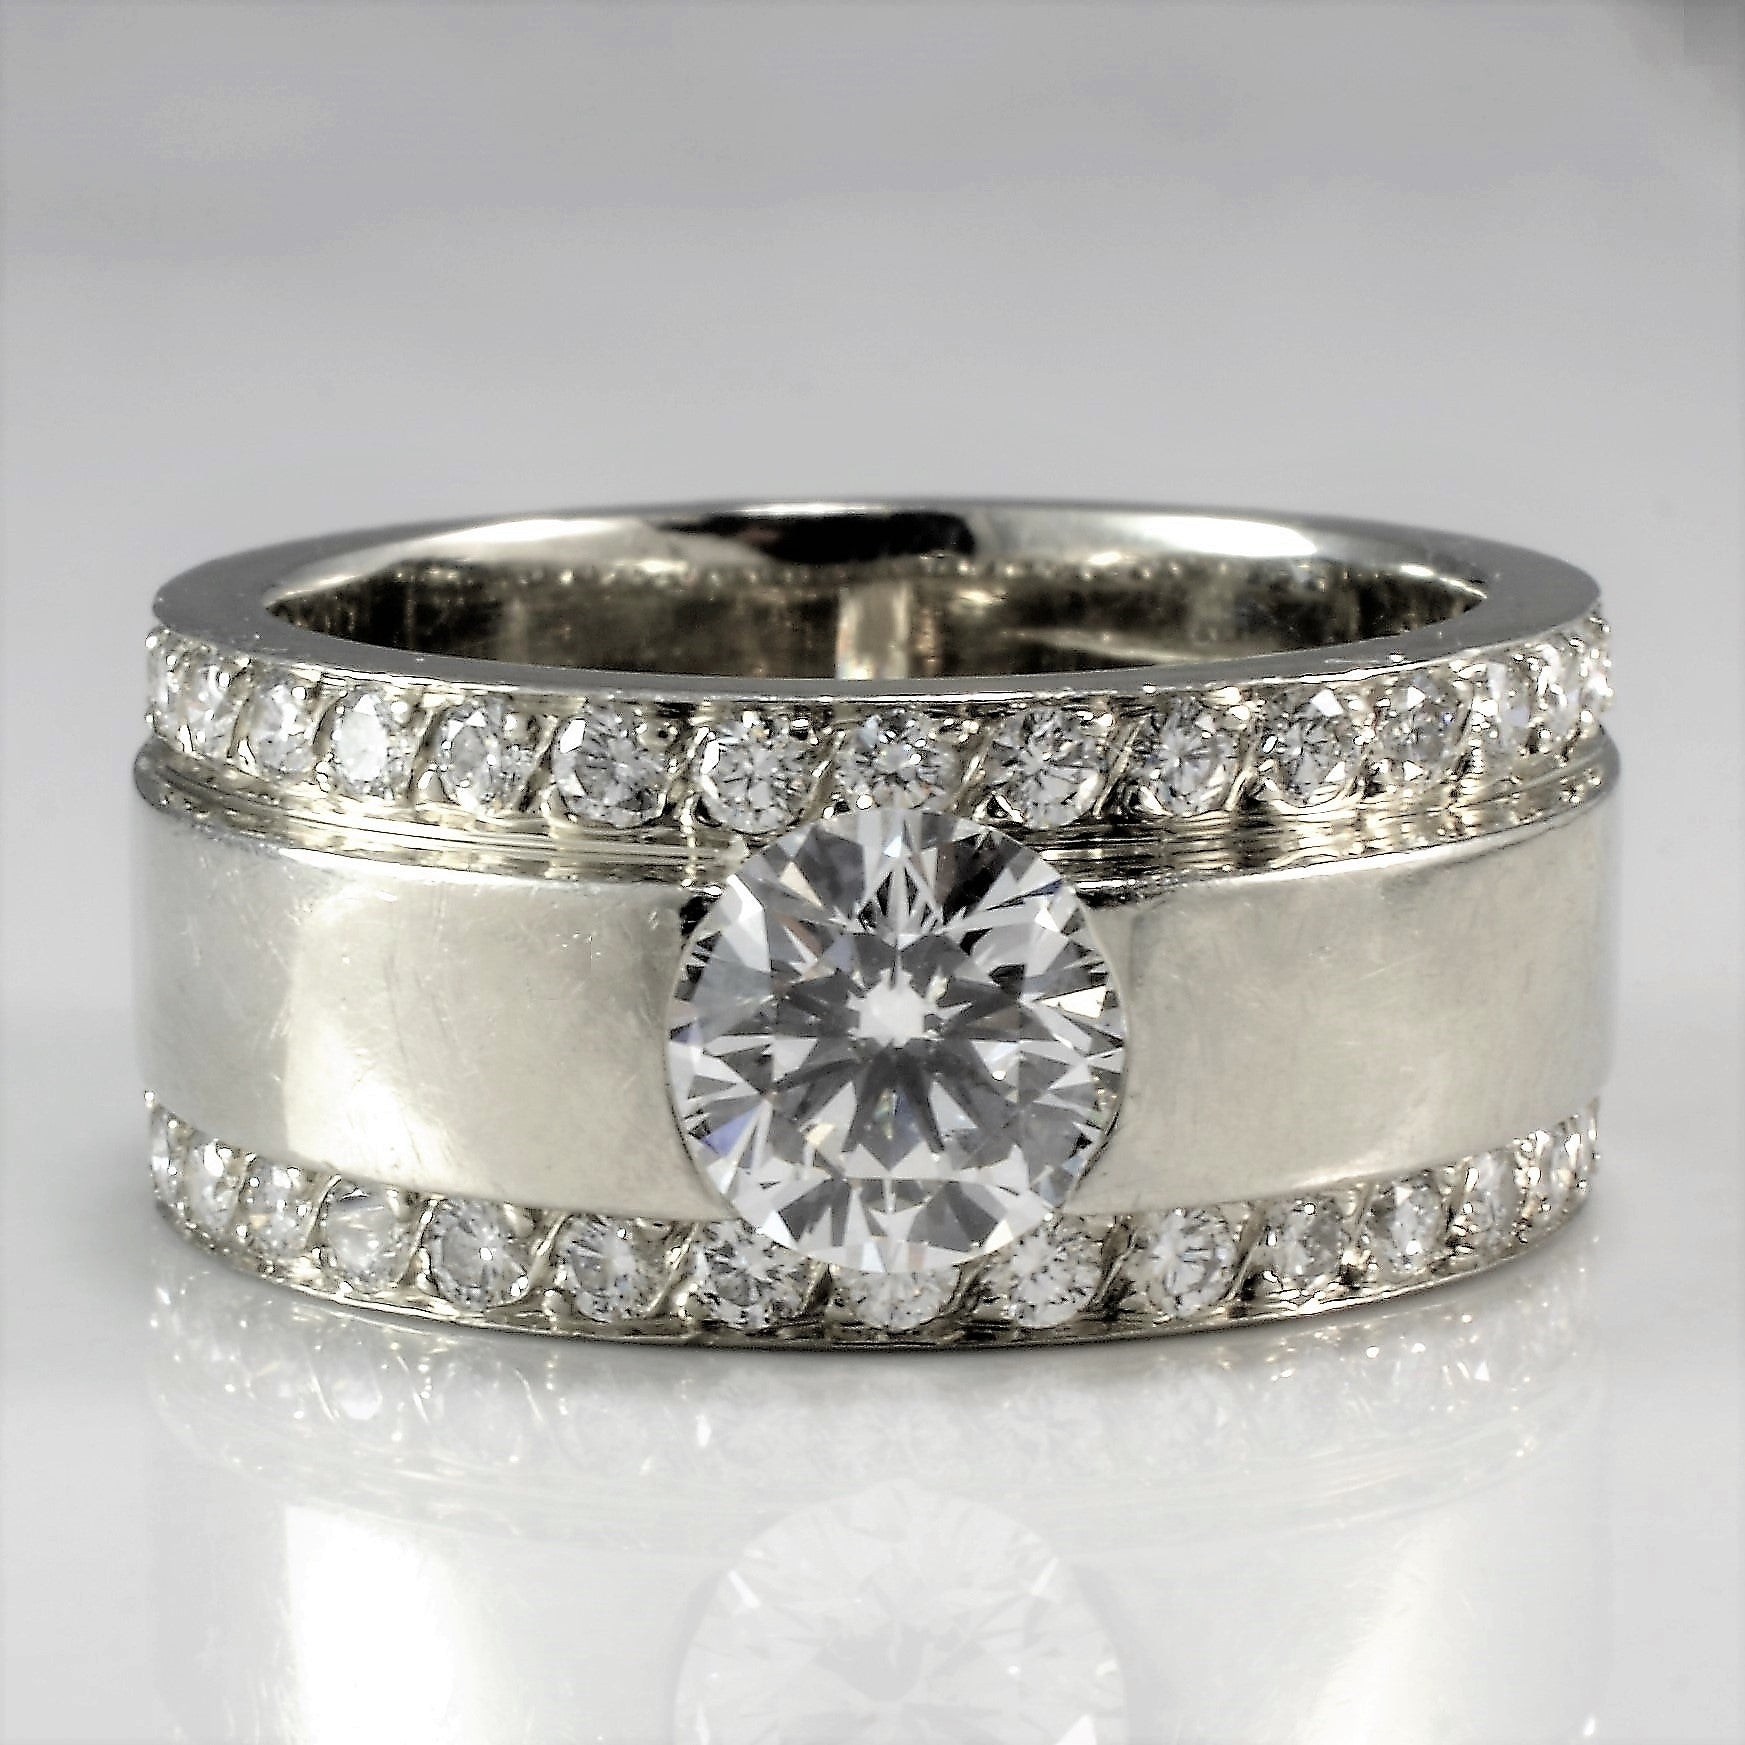 Polar Bear Diamond Engagement Ring | 1.25 ctw, SZ 5 |